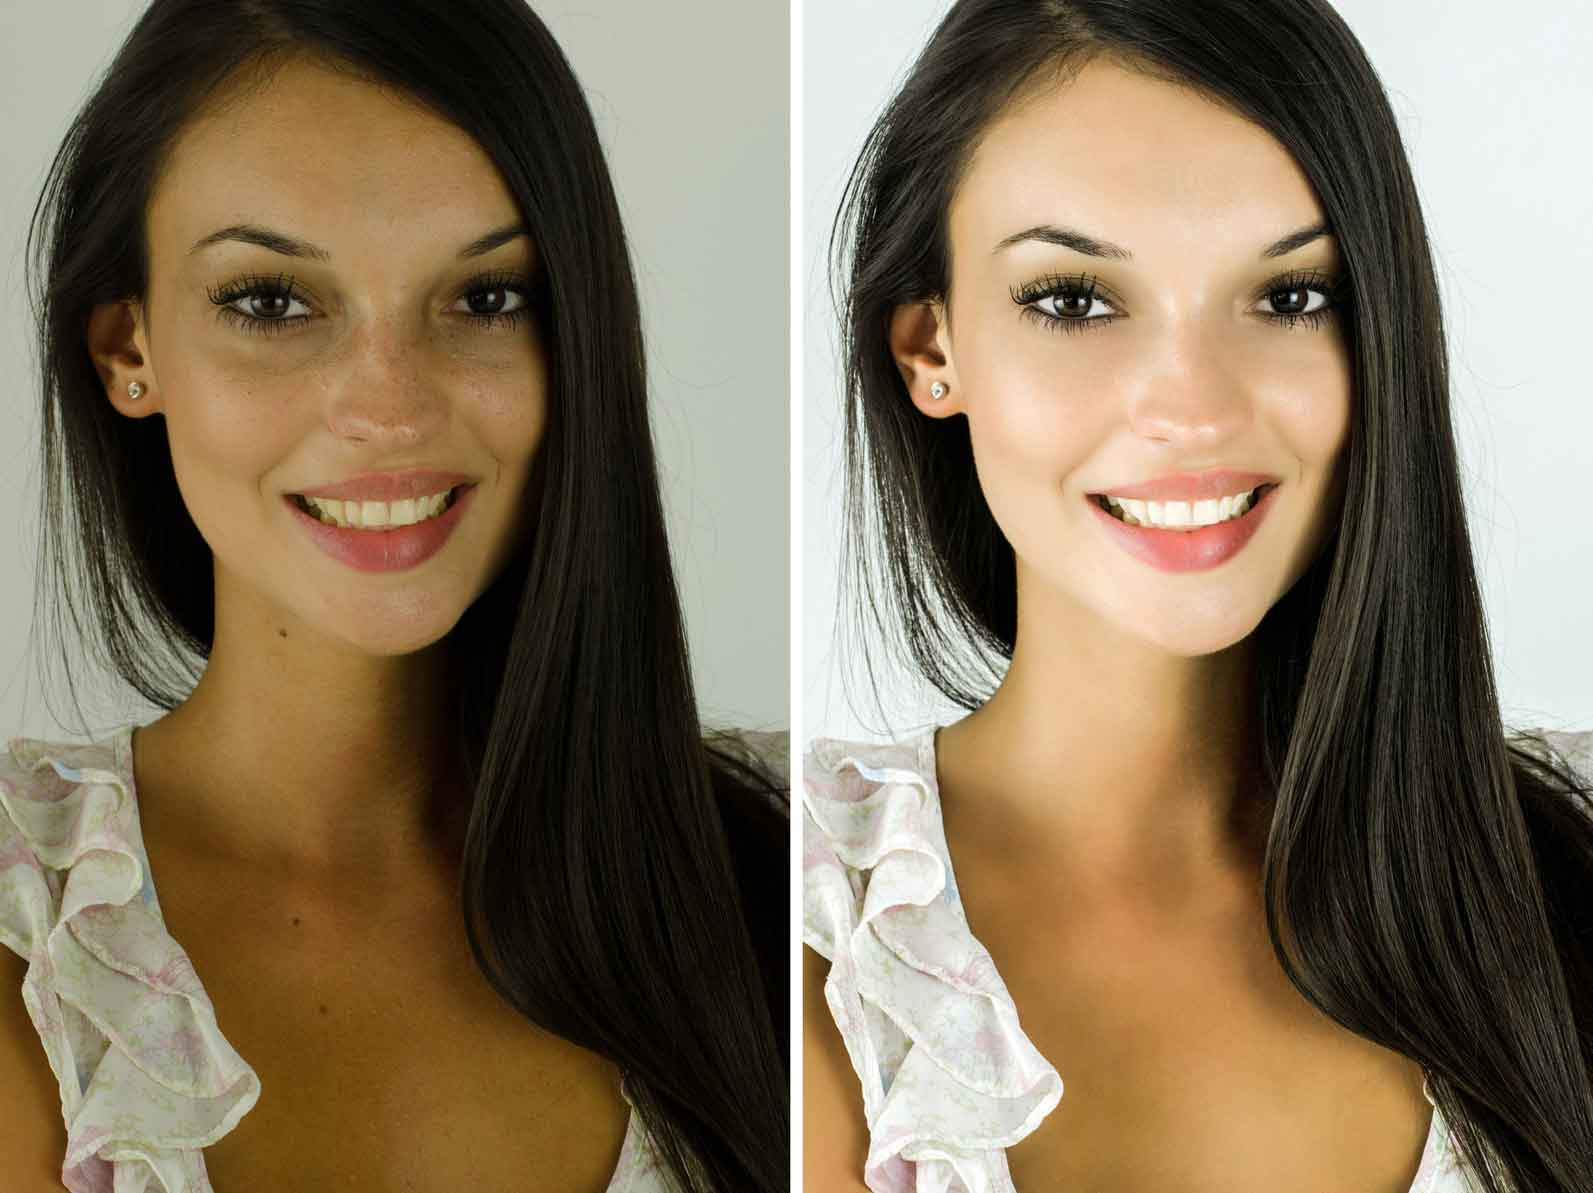 Before and after beauty treatments 14